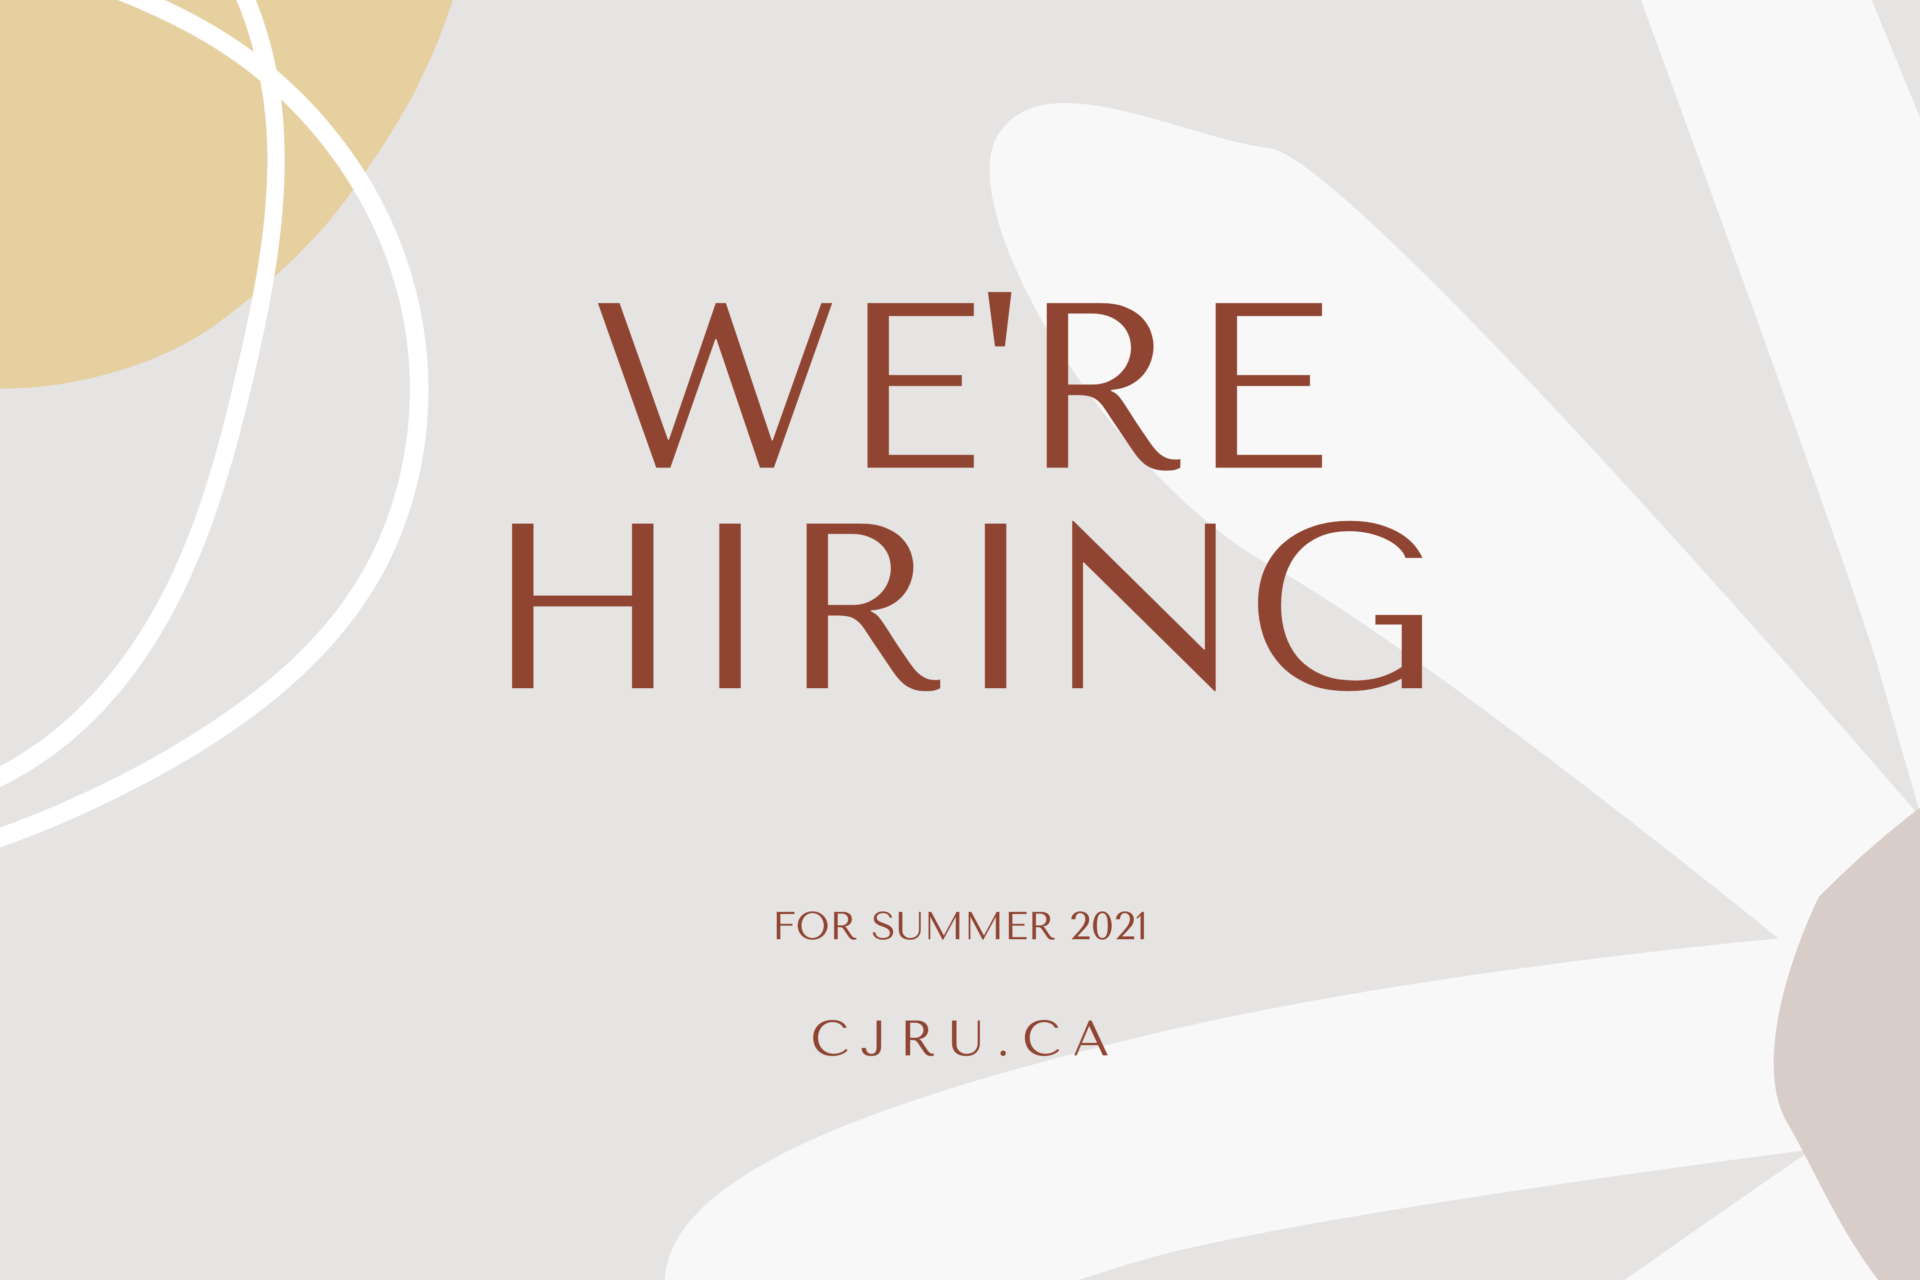 We're Hiring for summer 2021